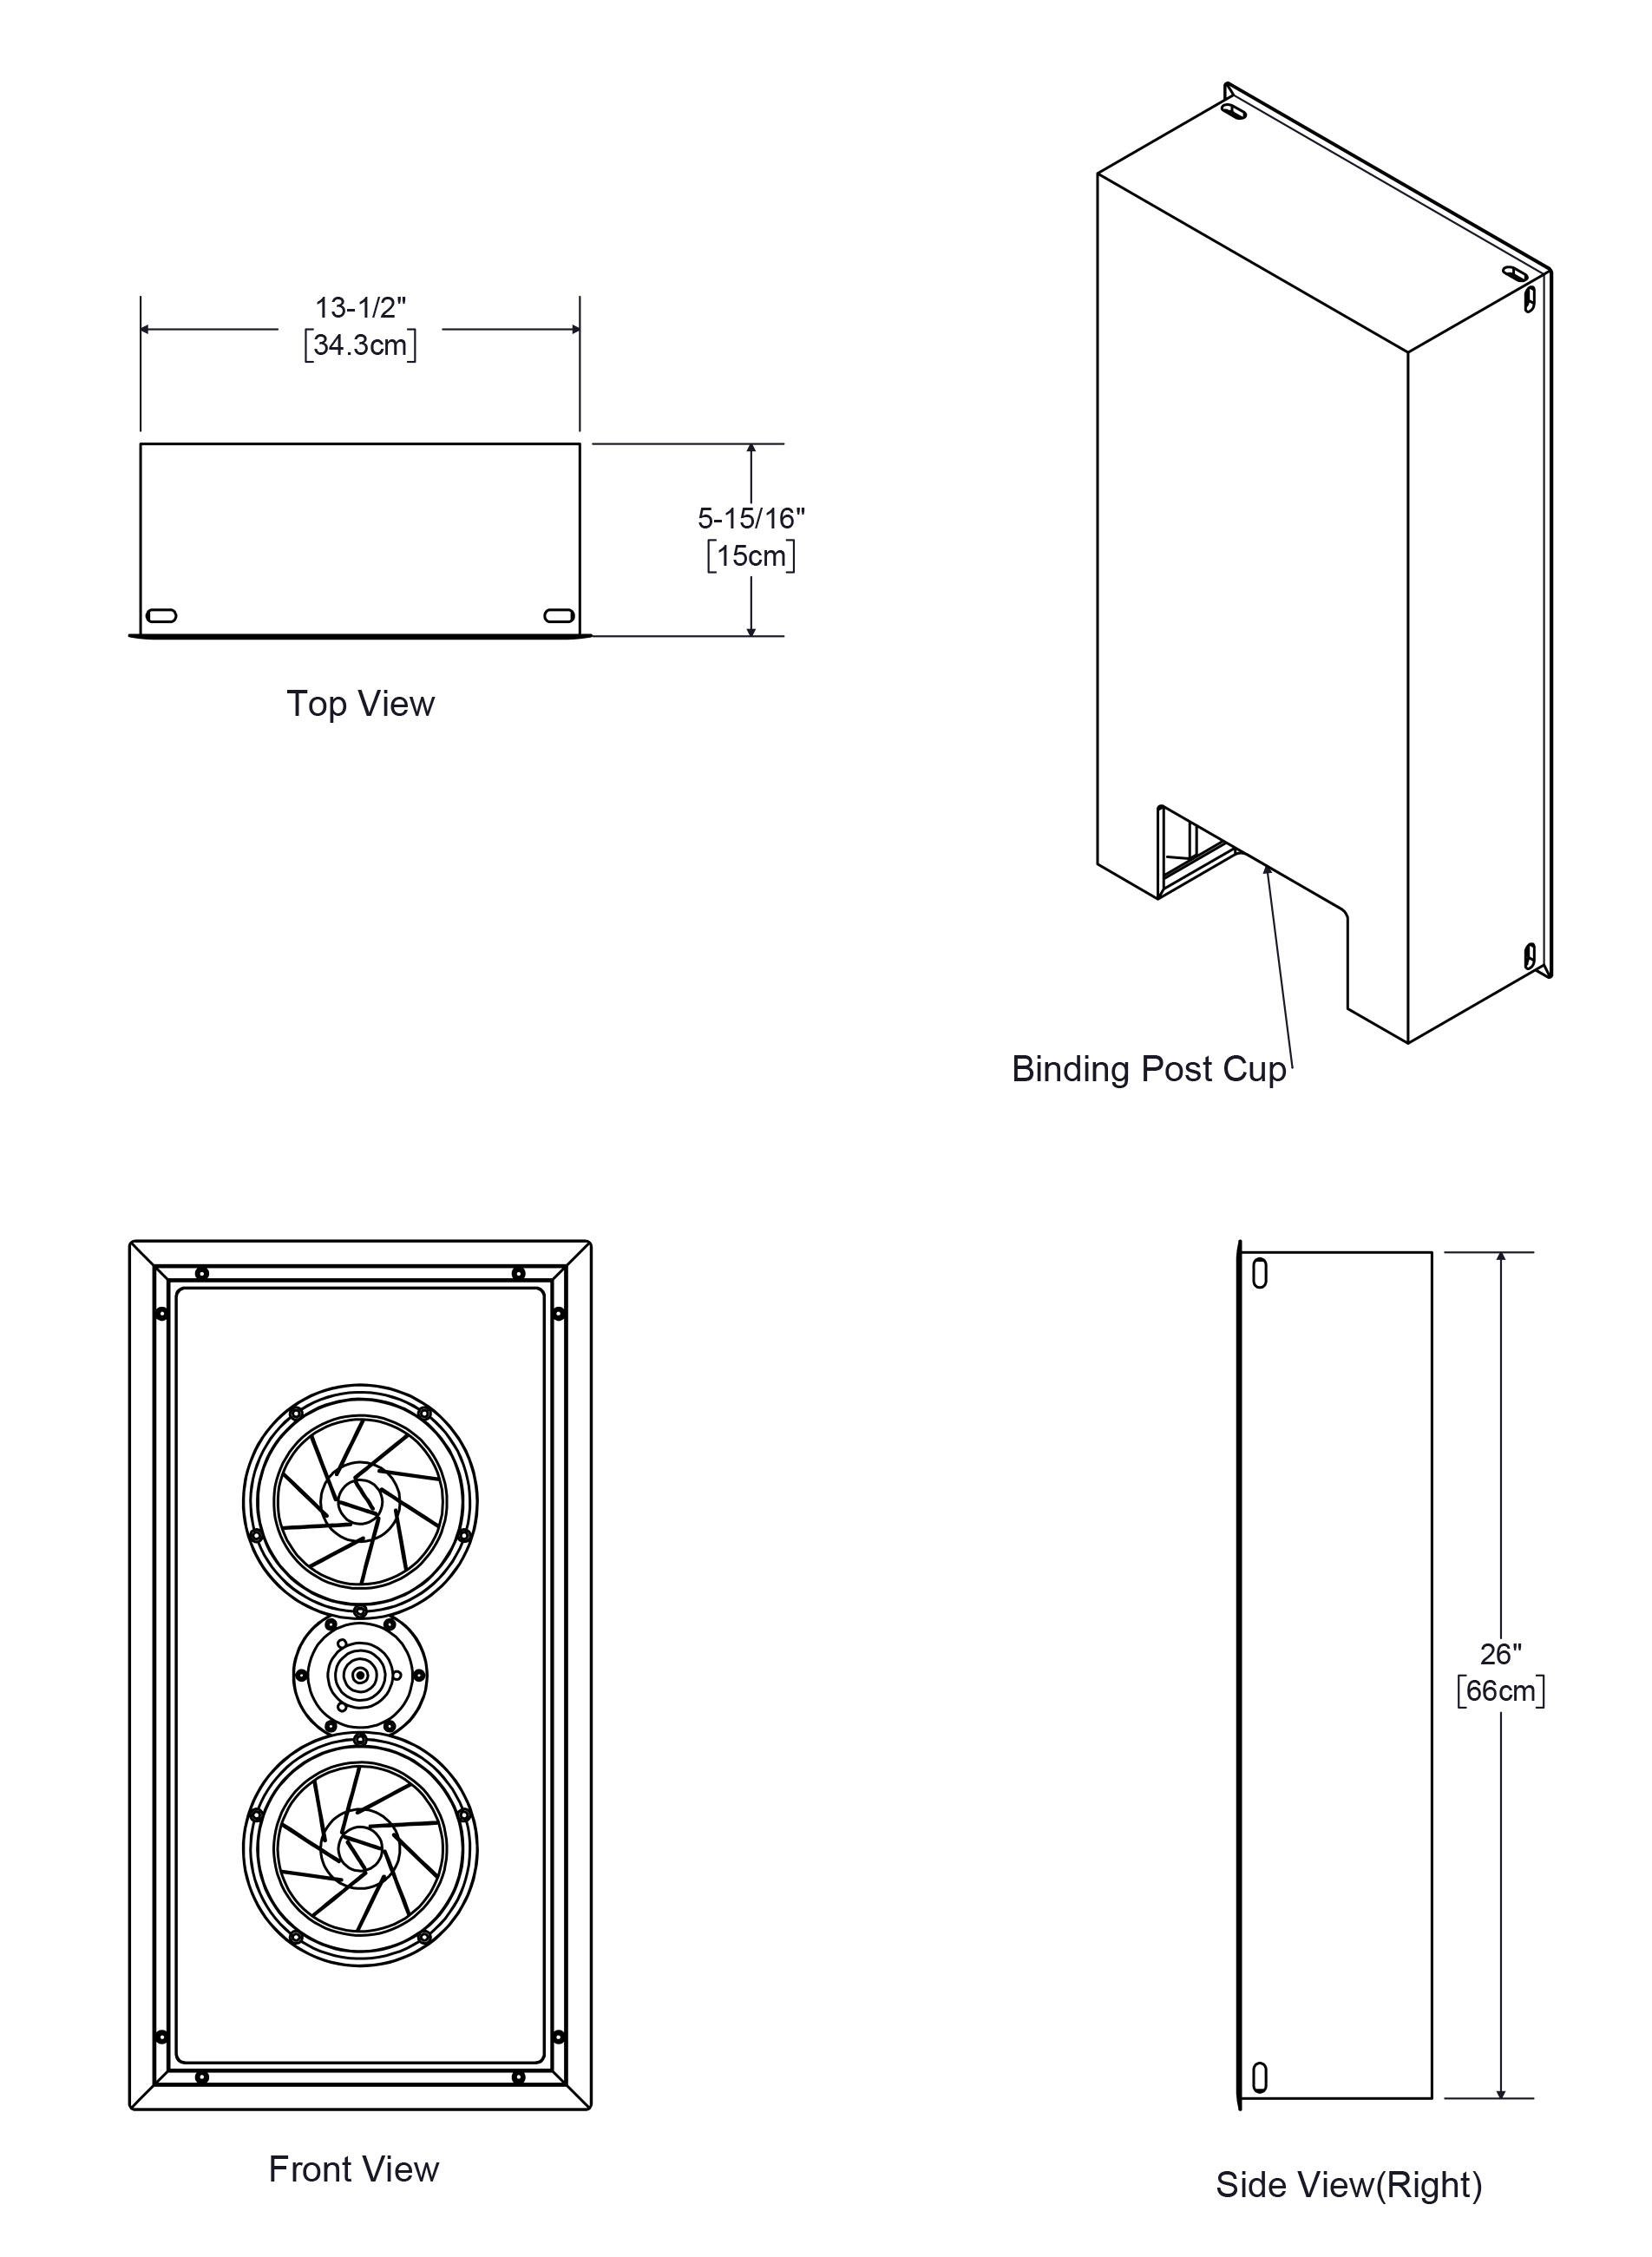 InWall-Gold-6-MonitorSM-Drawing-for-Cad-.jpg